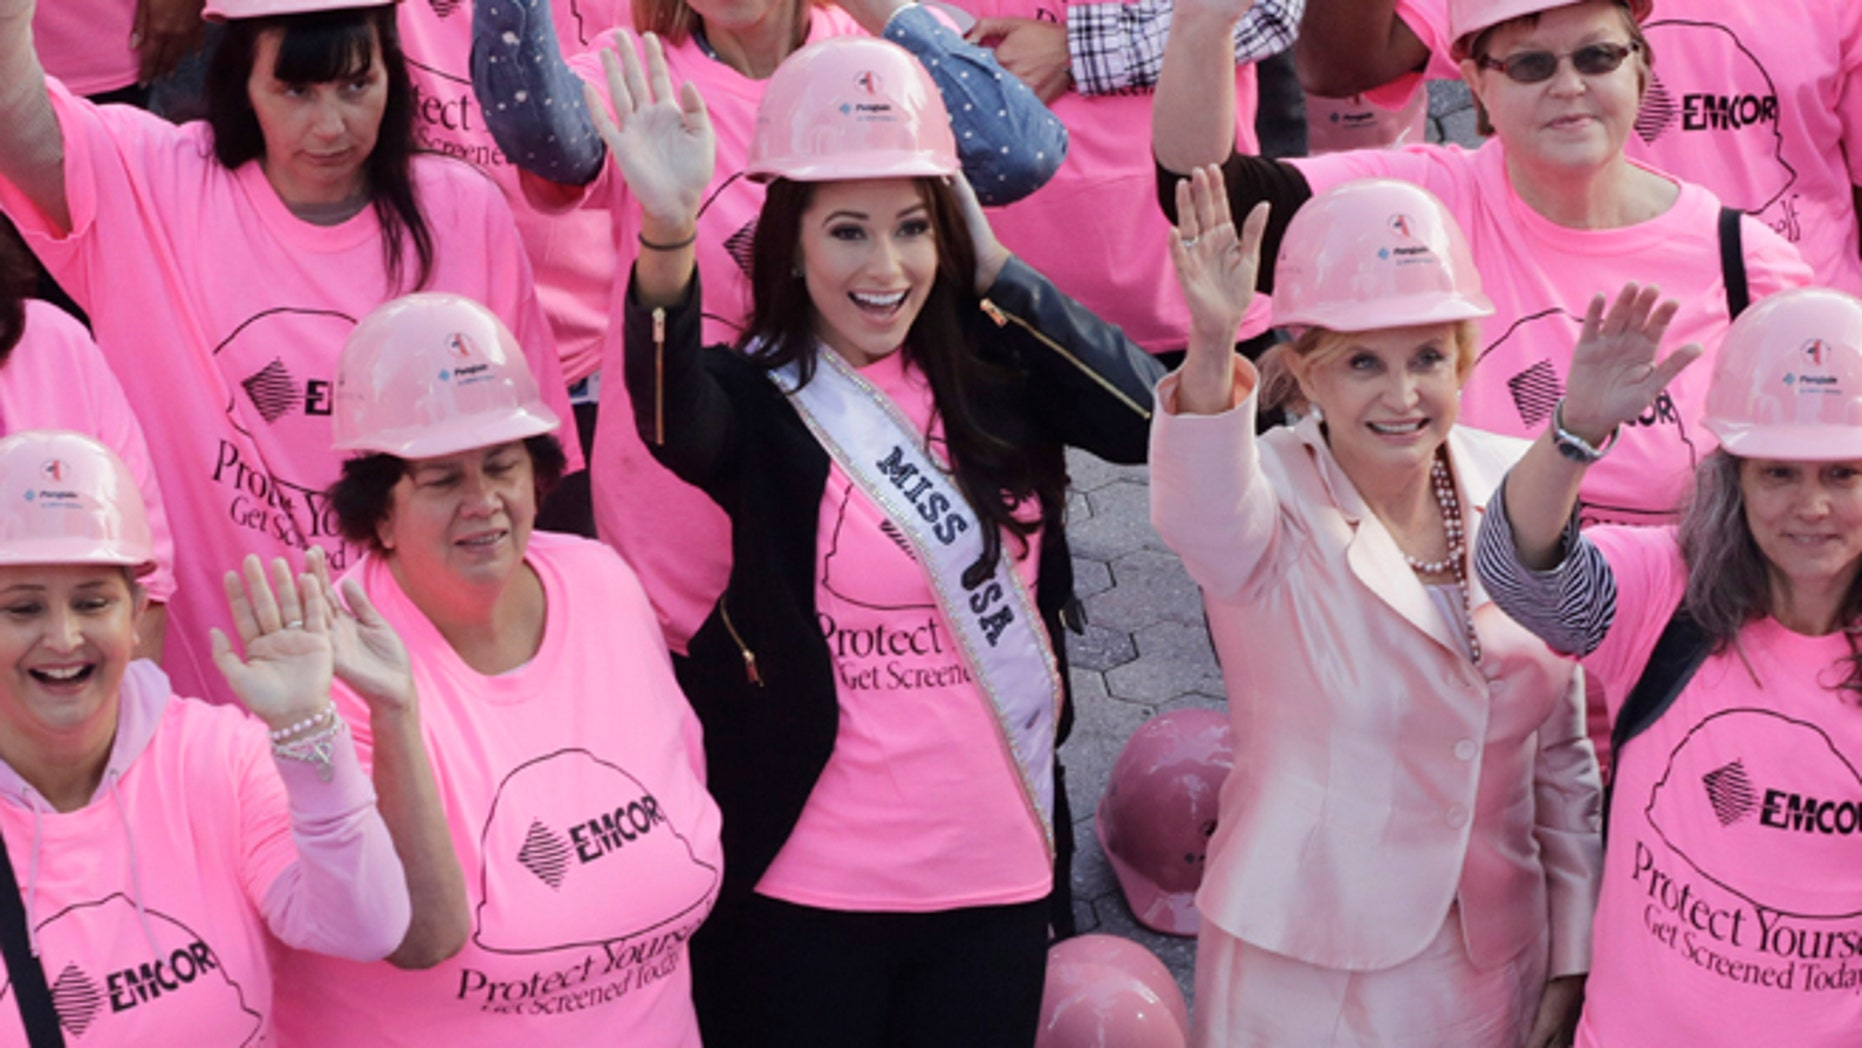 Nia Sanchez, center, Miss USA, joins hundreds of volunteers in pink hard hats and shirts to form a human pink ribbon in an event for Breast Cancer Awareness Month, Tuesday, Oct. 7, 2014 in New York. (AP Photo/Mark Lennihan)